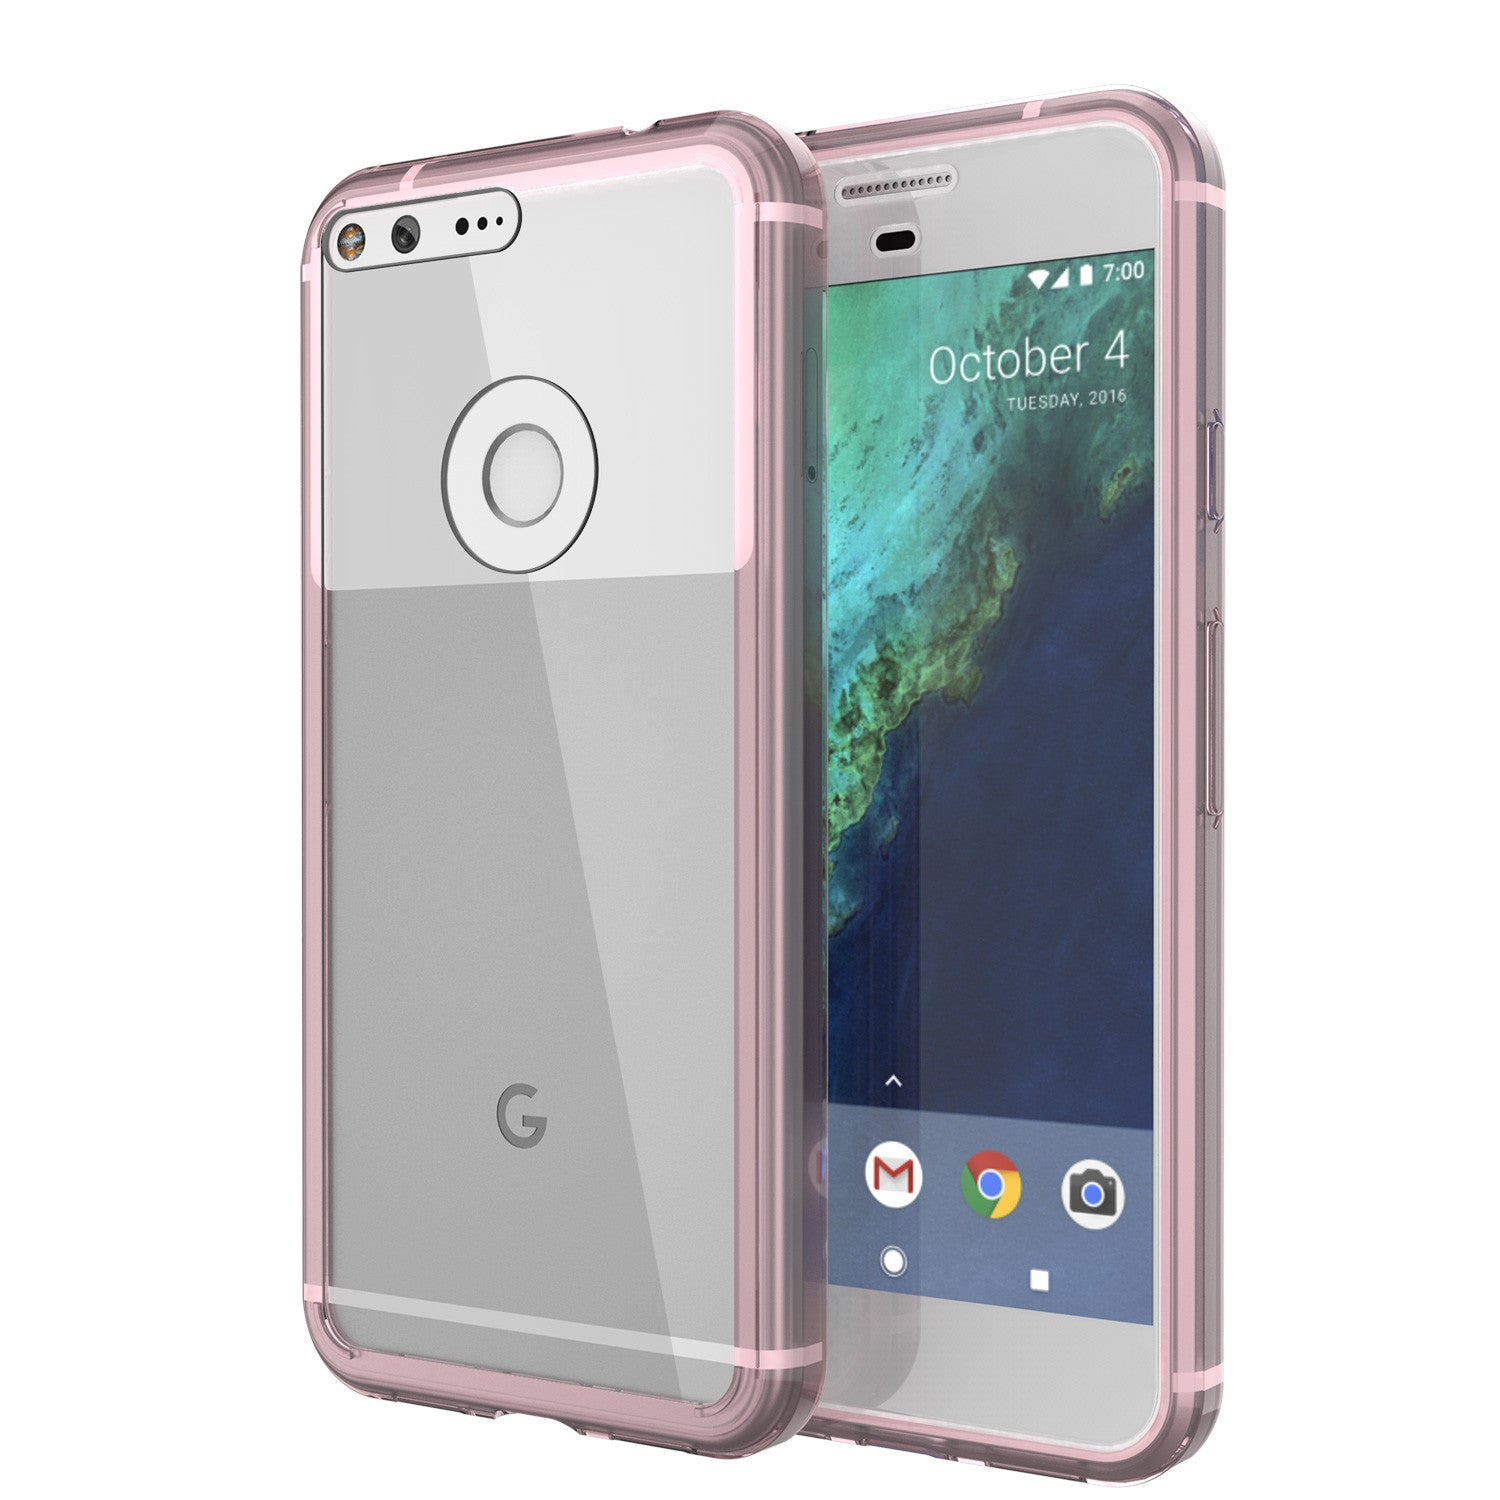 Google Pixel Case Punkcase® LUCID 2.0 Crystal Pink Series w/ PUNK SHIELD Glass Screen Protector | Ultra Fit